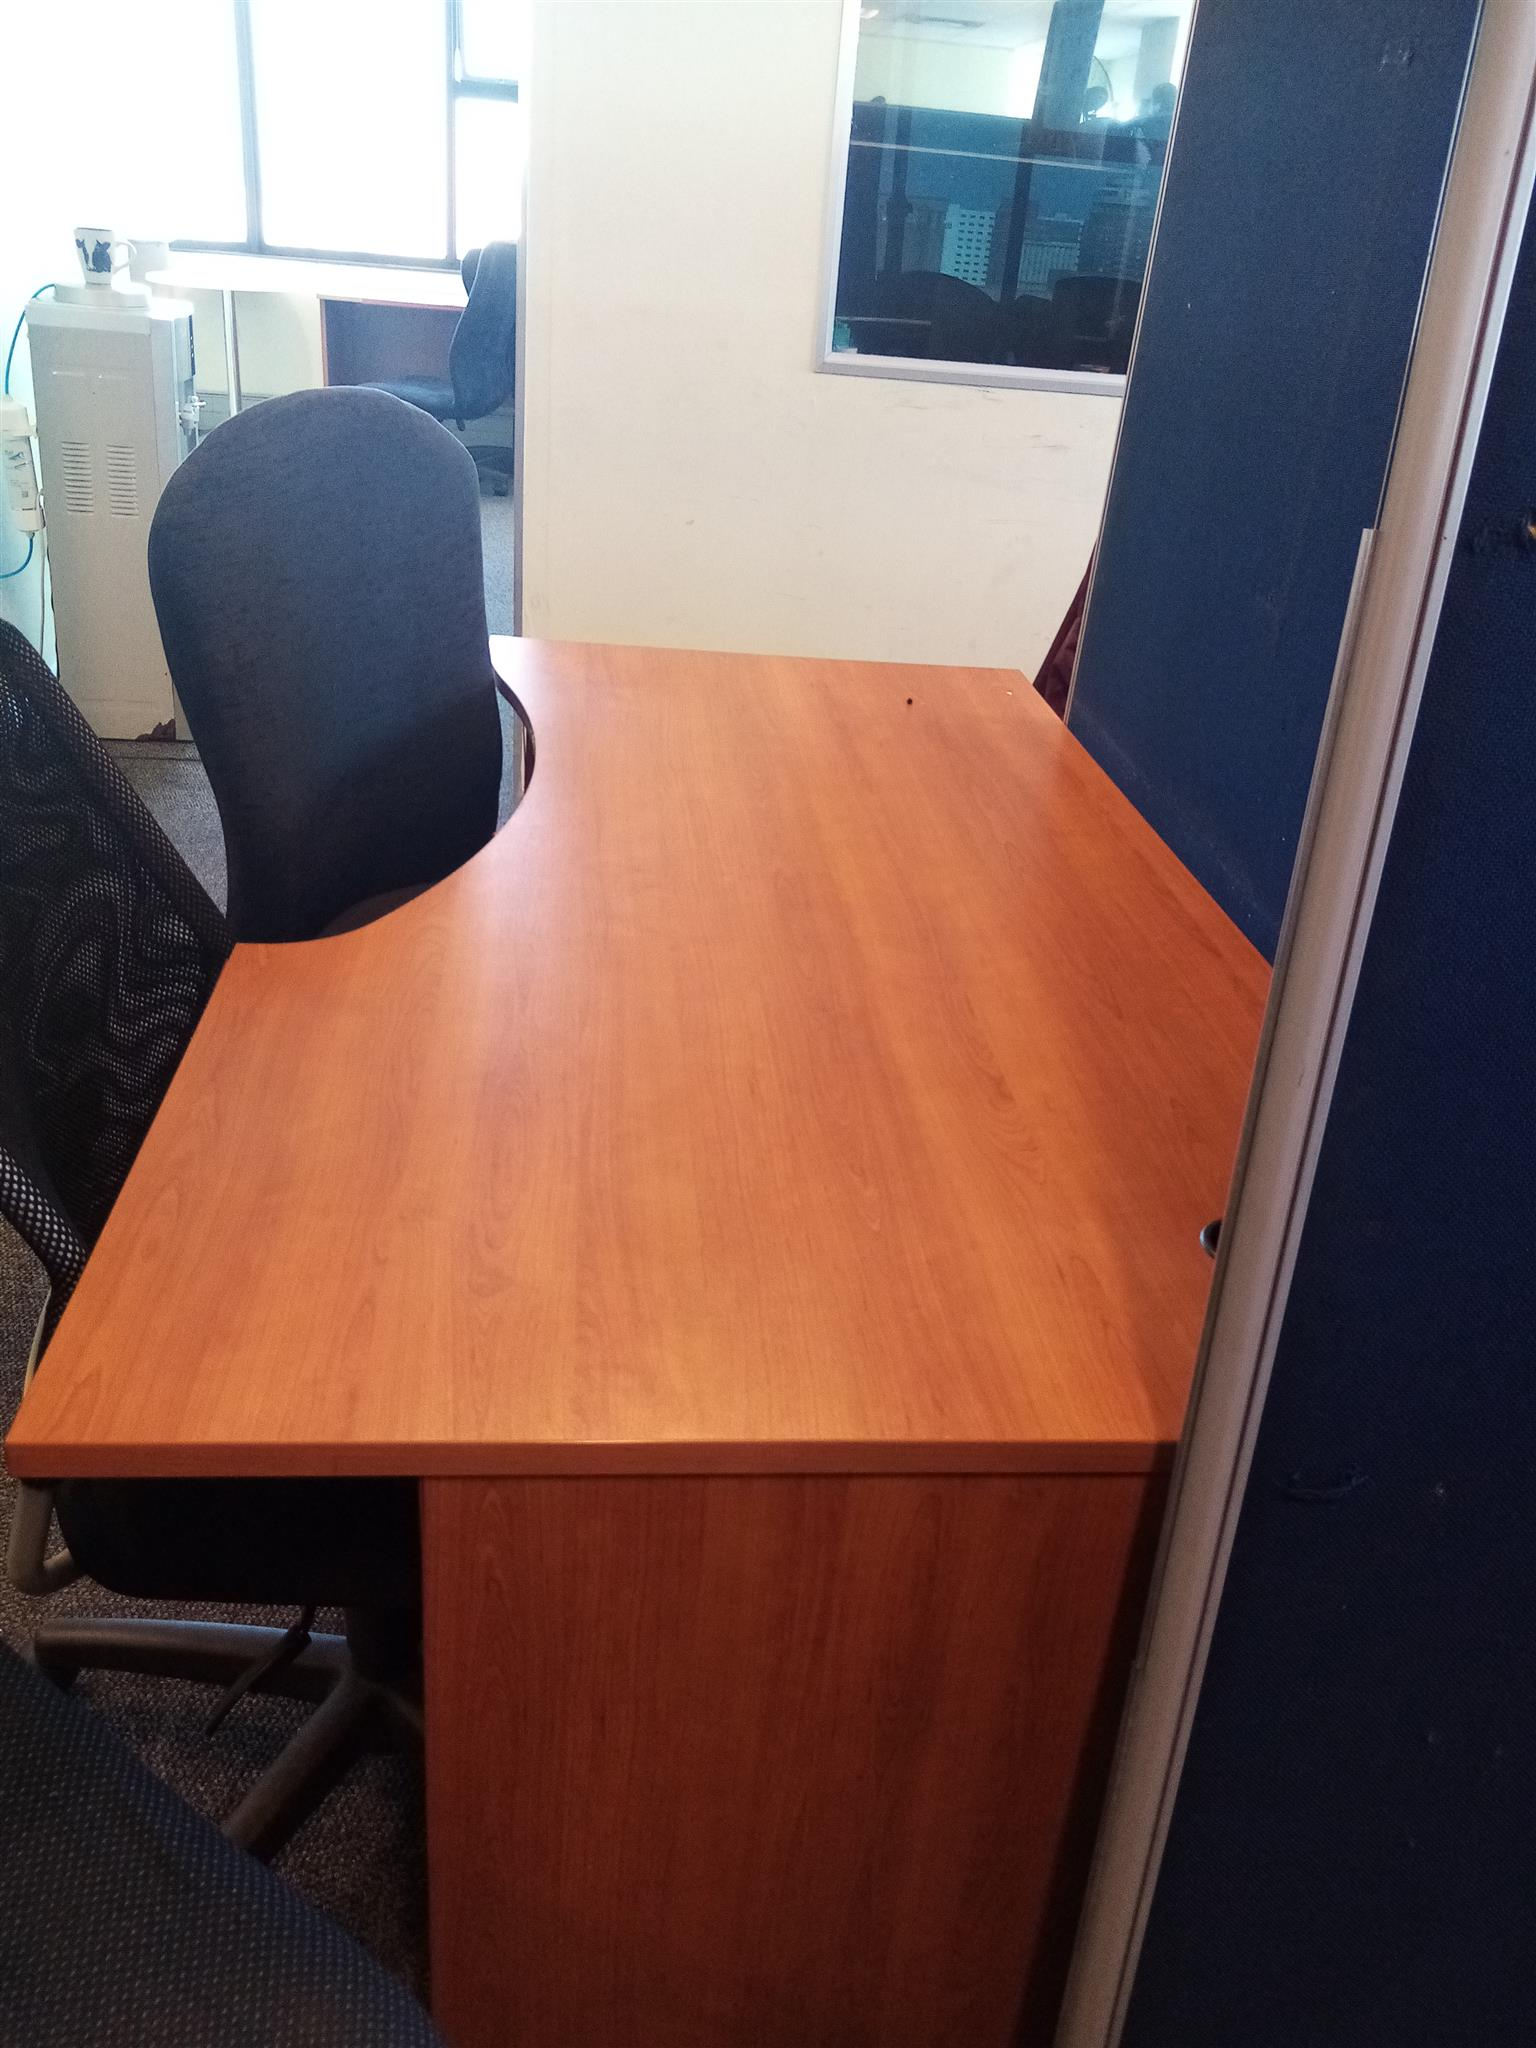 2nd Hand Office Chairs & Tables for sale.